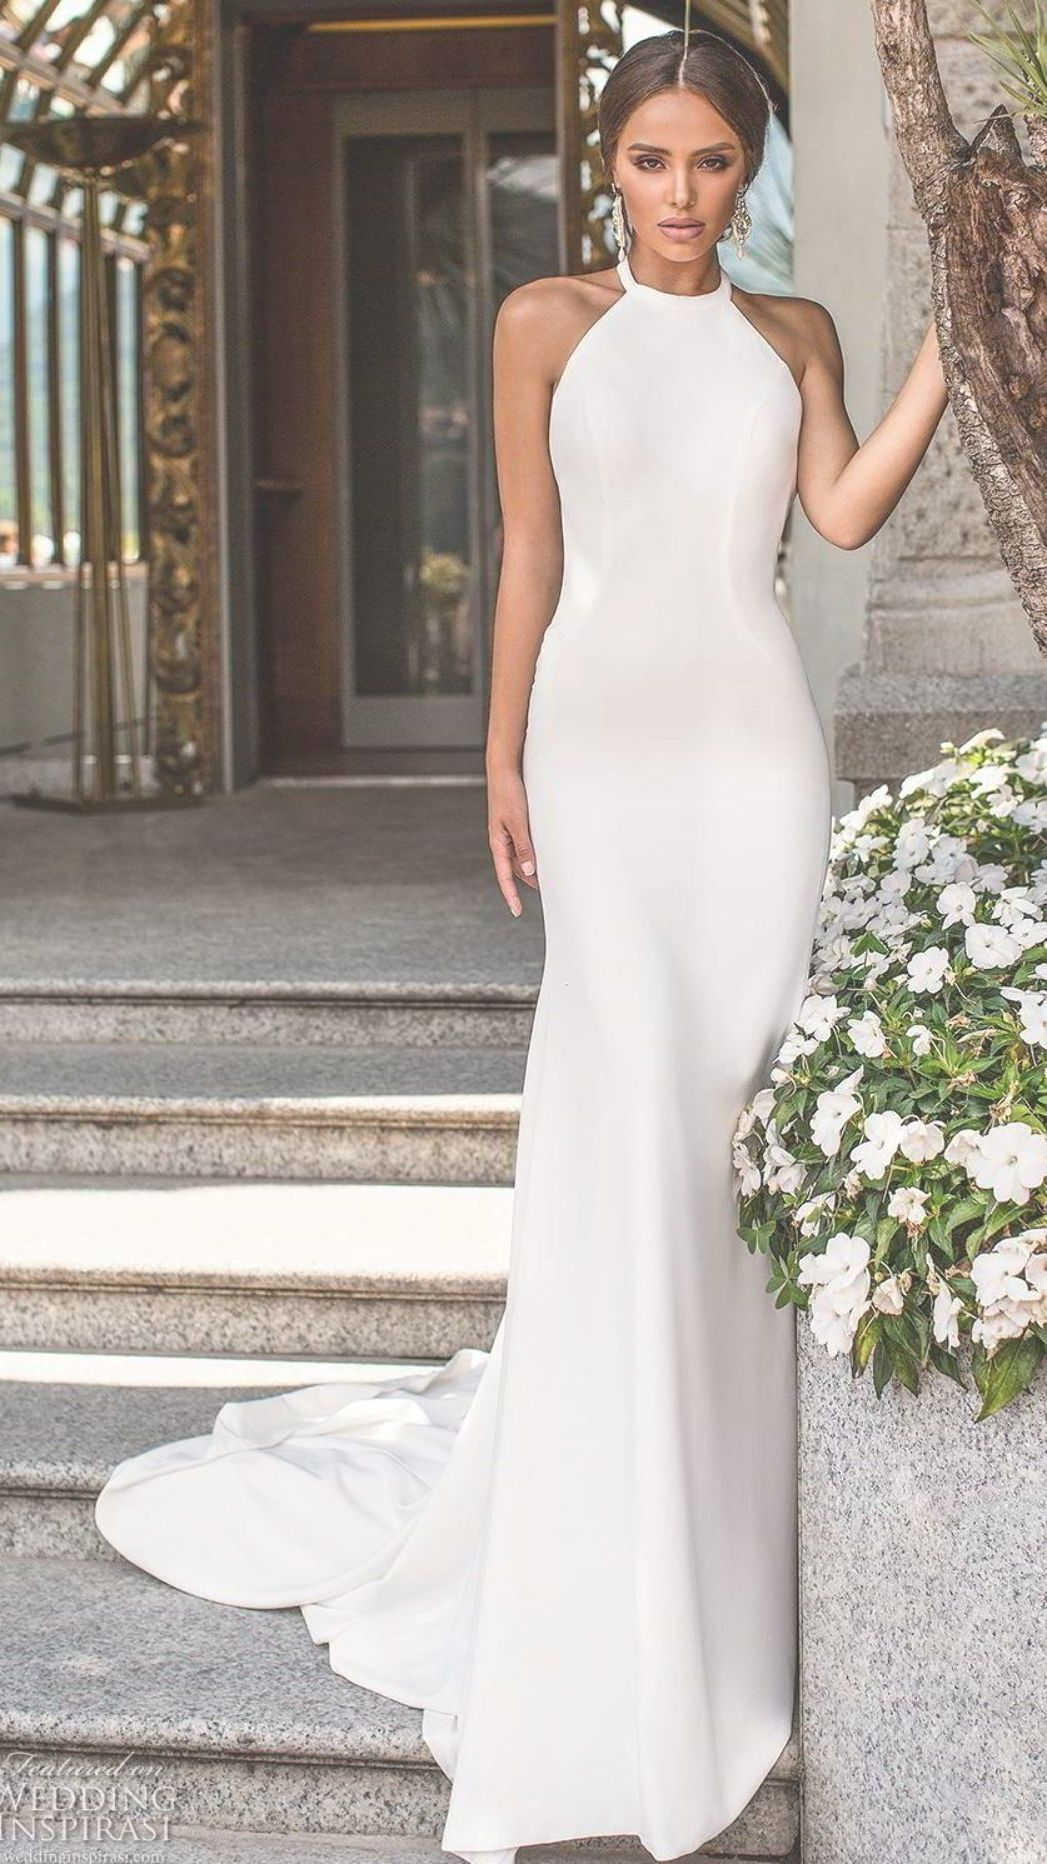 A Guide To Uncomplicated Mermaid Wedding Dresses Plans In 2021 Halter Wedding Dress Wedding Dresses Simple Wedding Dresses [ 1864 x 1047 Pixel ]